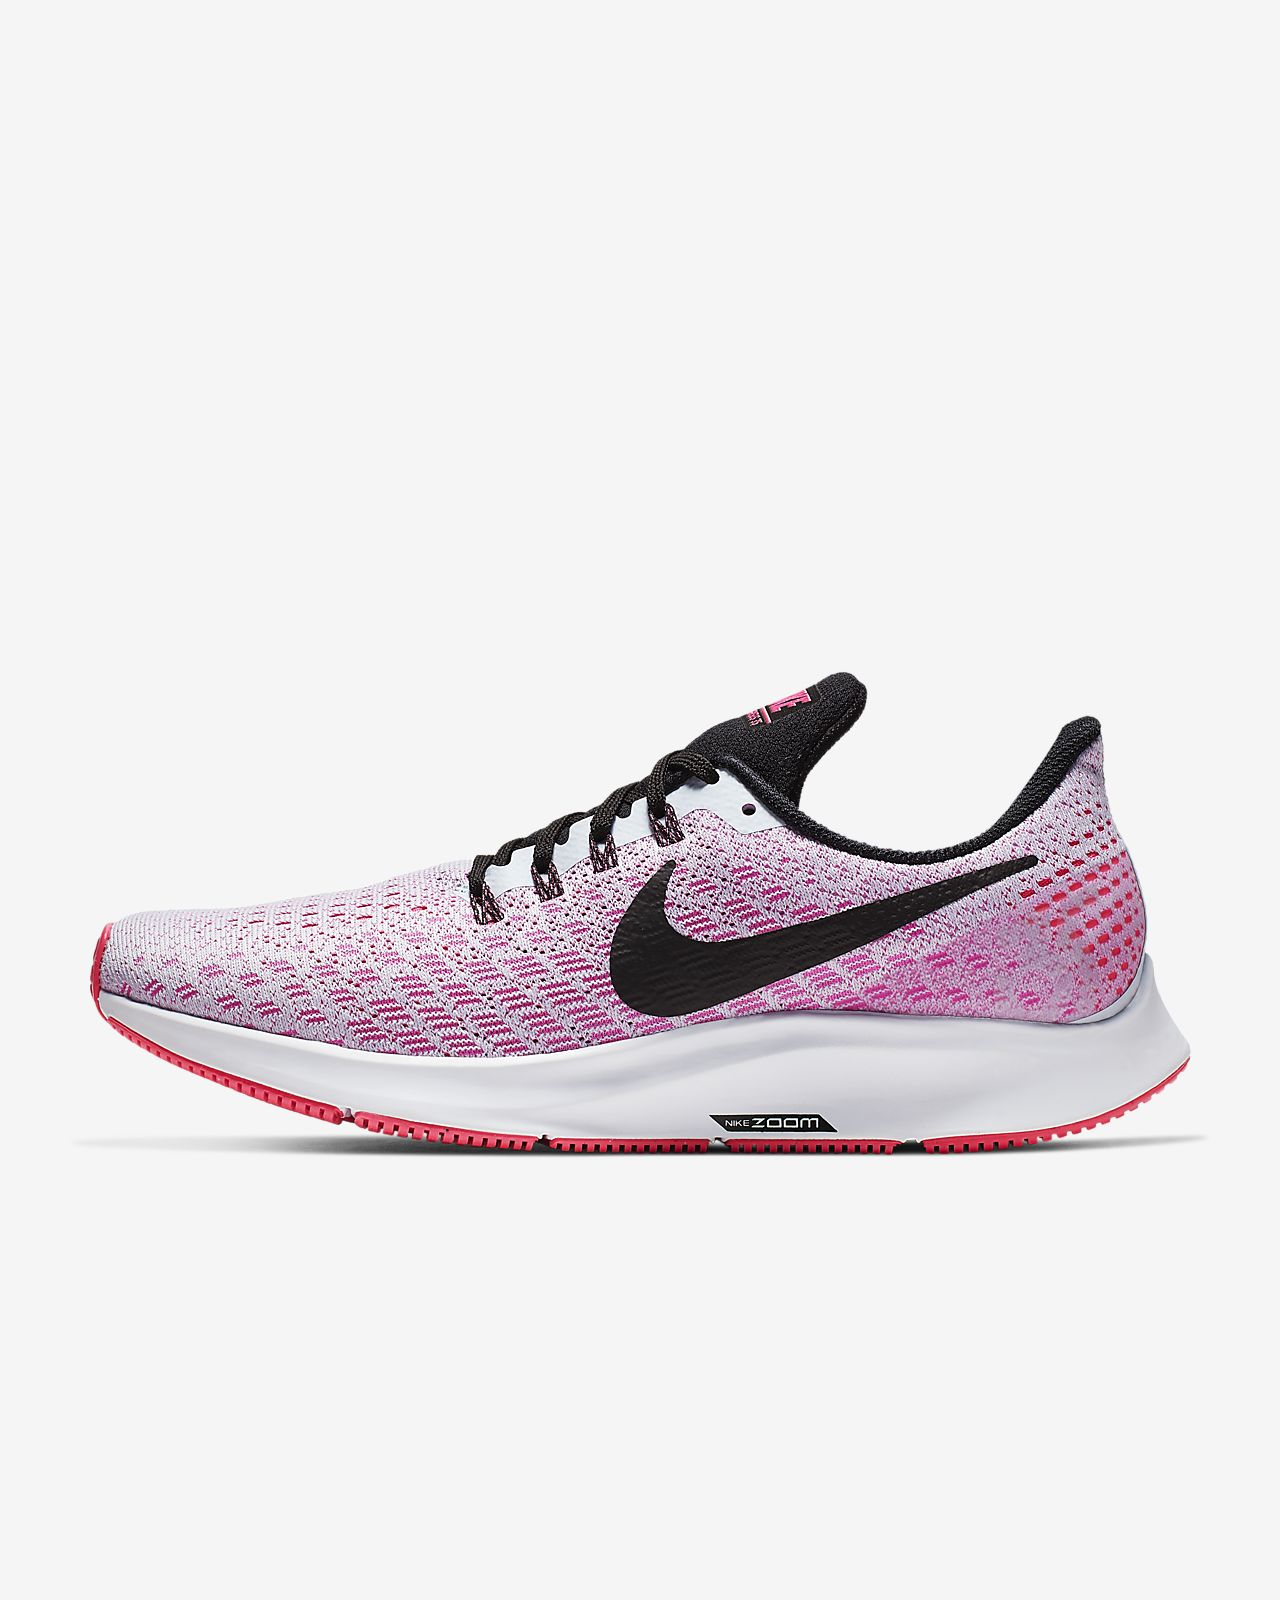 a7433f9e03b0c Nike Air Zoom Pegasus 35 Women s Running Shoe. Nike.com